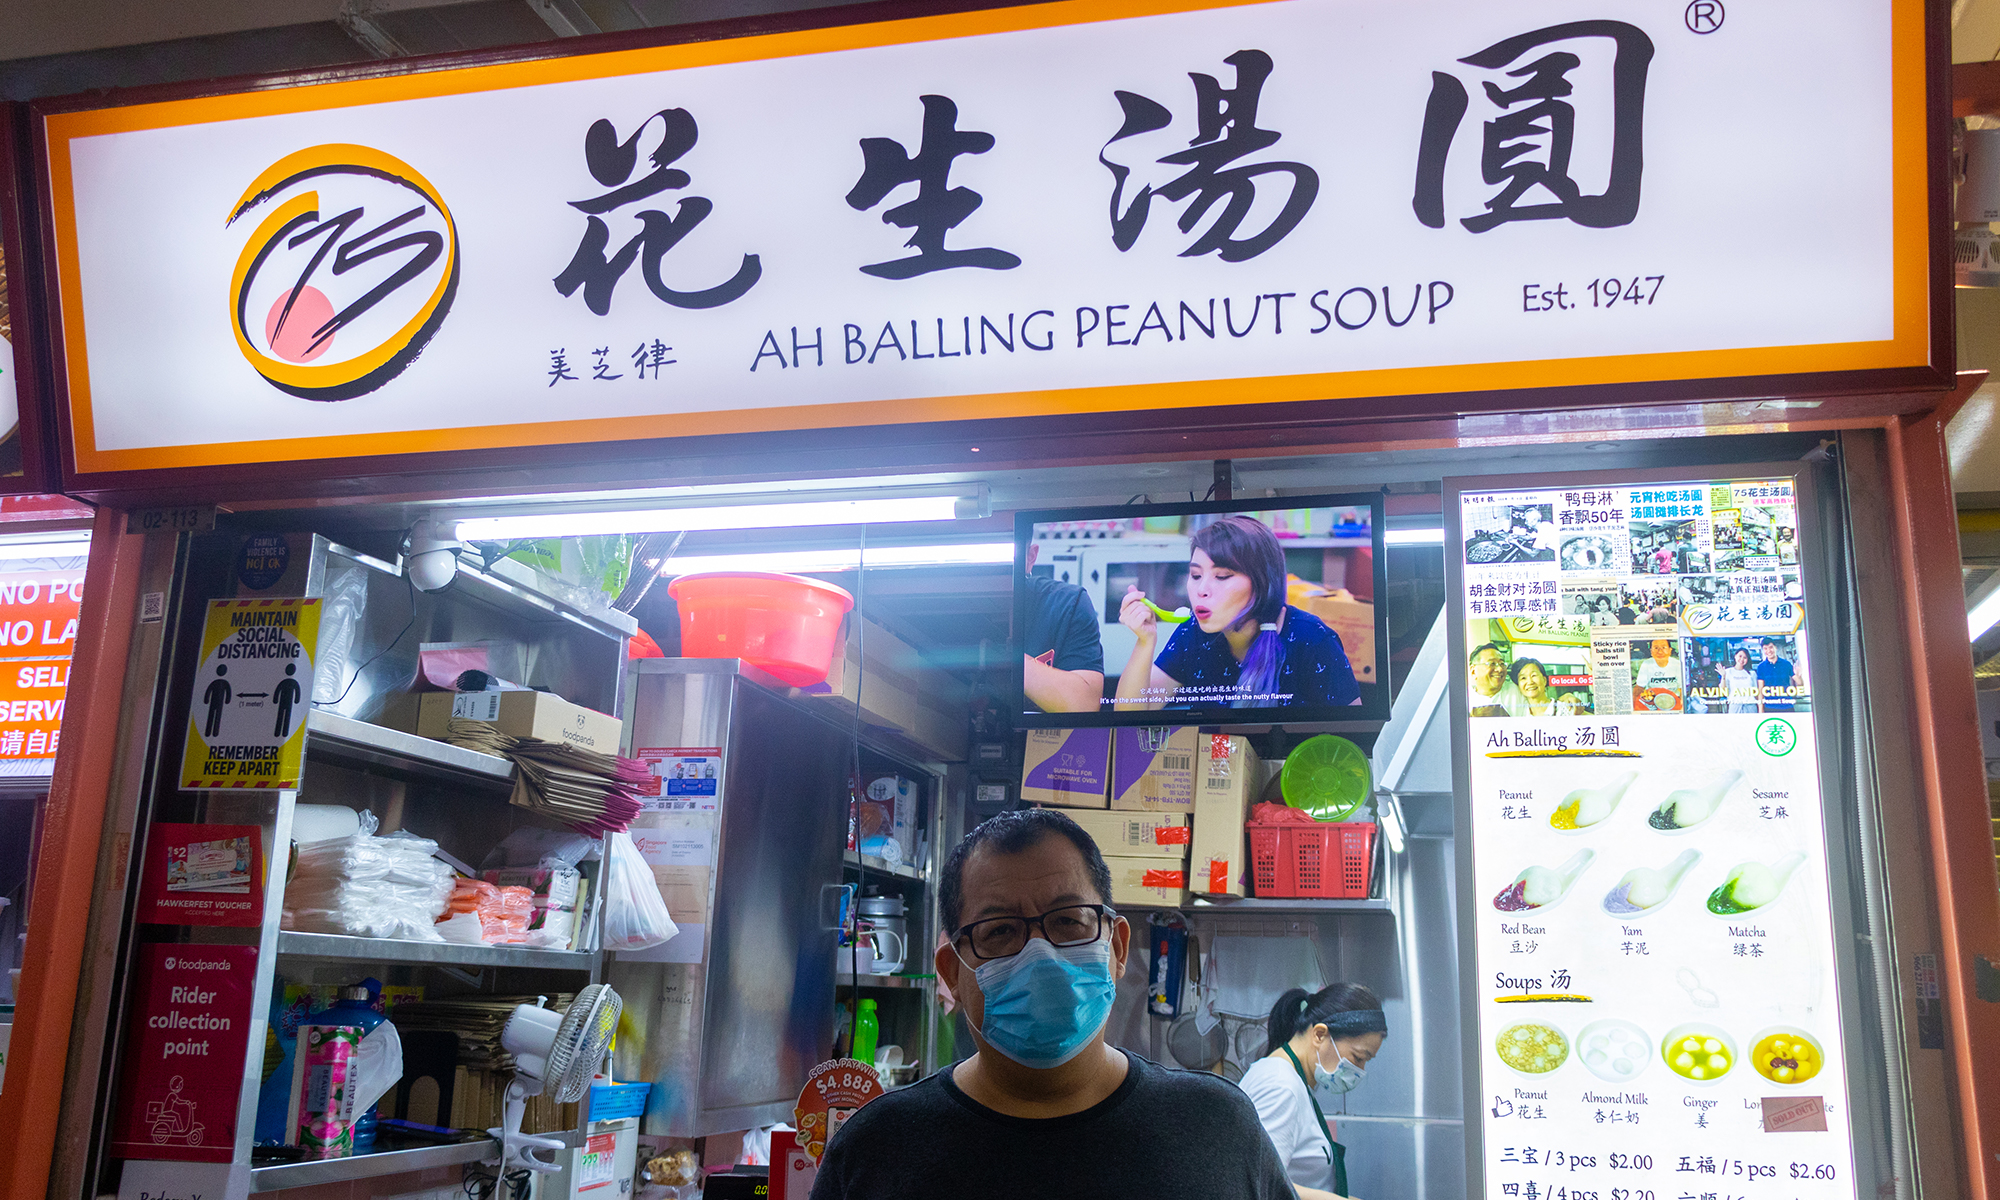 Store front of 75 Ah Balling Peanut Soup at Chinatown Complex